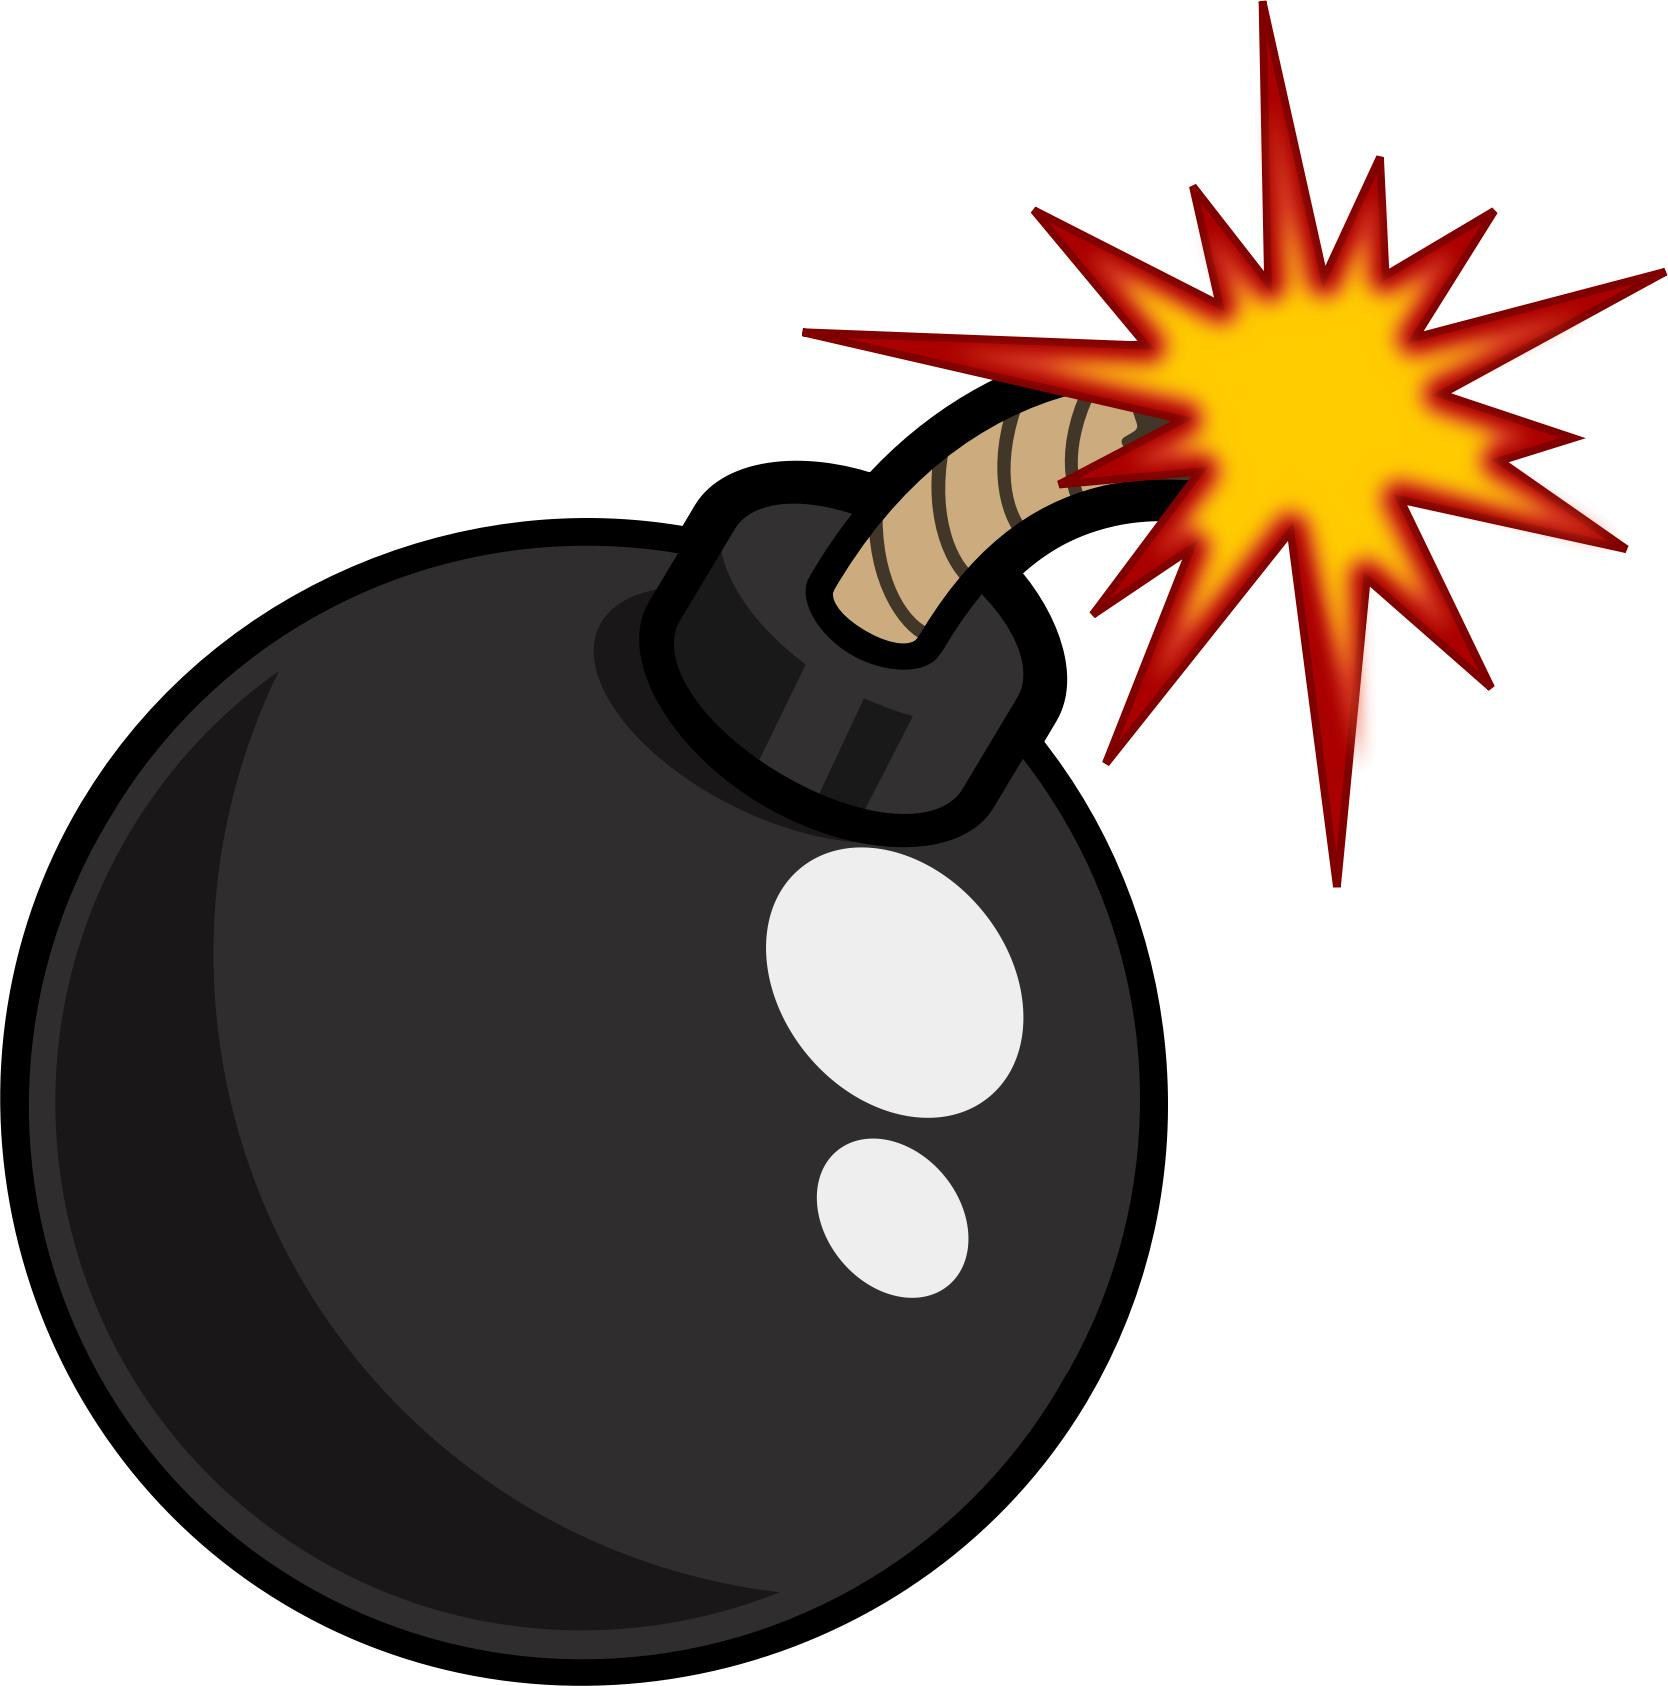 Bomb clipart old fashioned. Popular png icons free